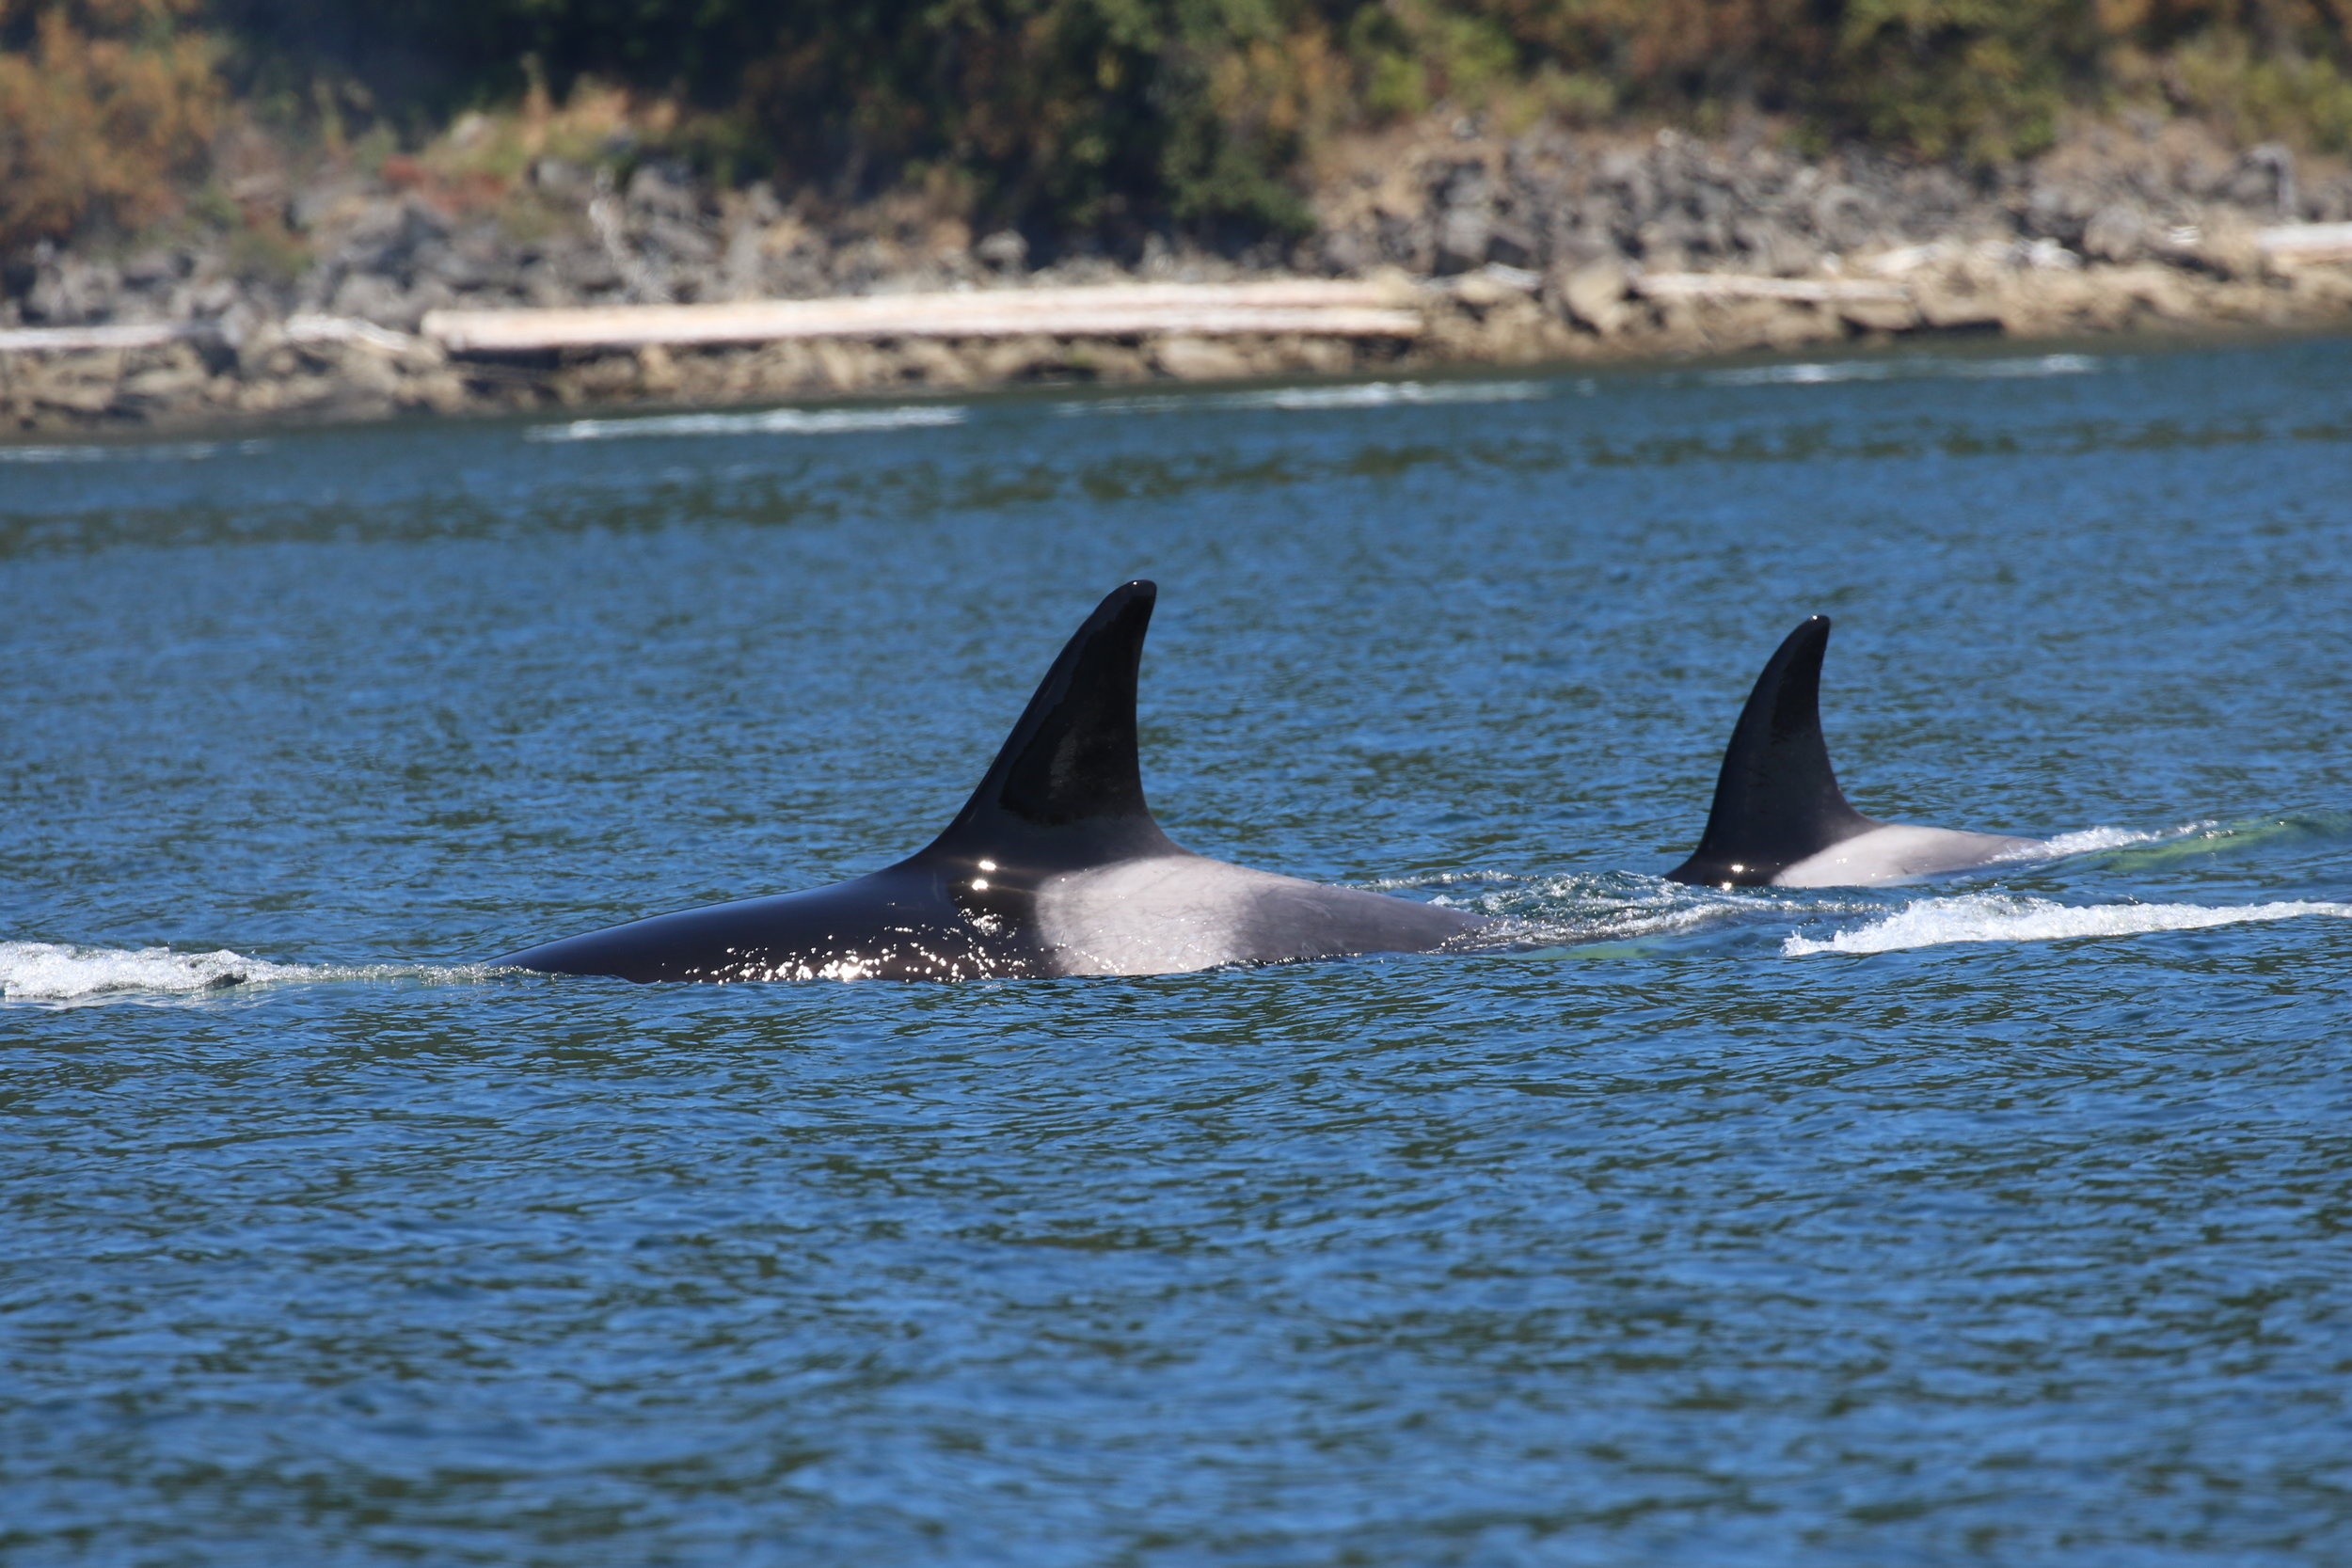 Kittiwake (T124A) and Wasini (T124A3). Photo by Cheyenne Brewster (10:30).